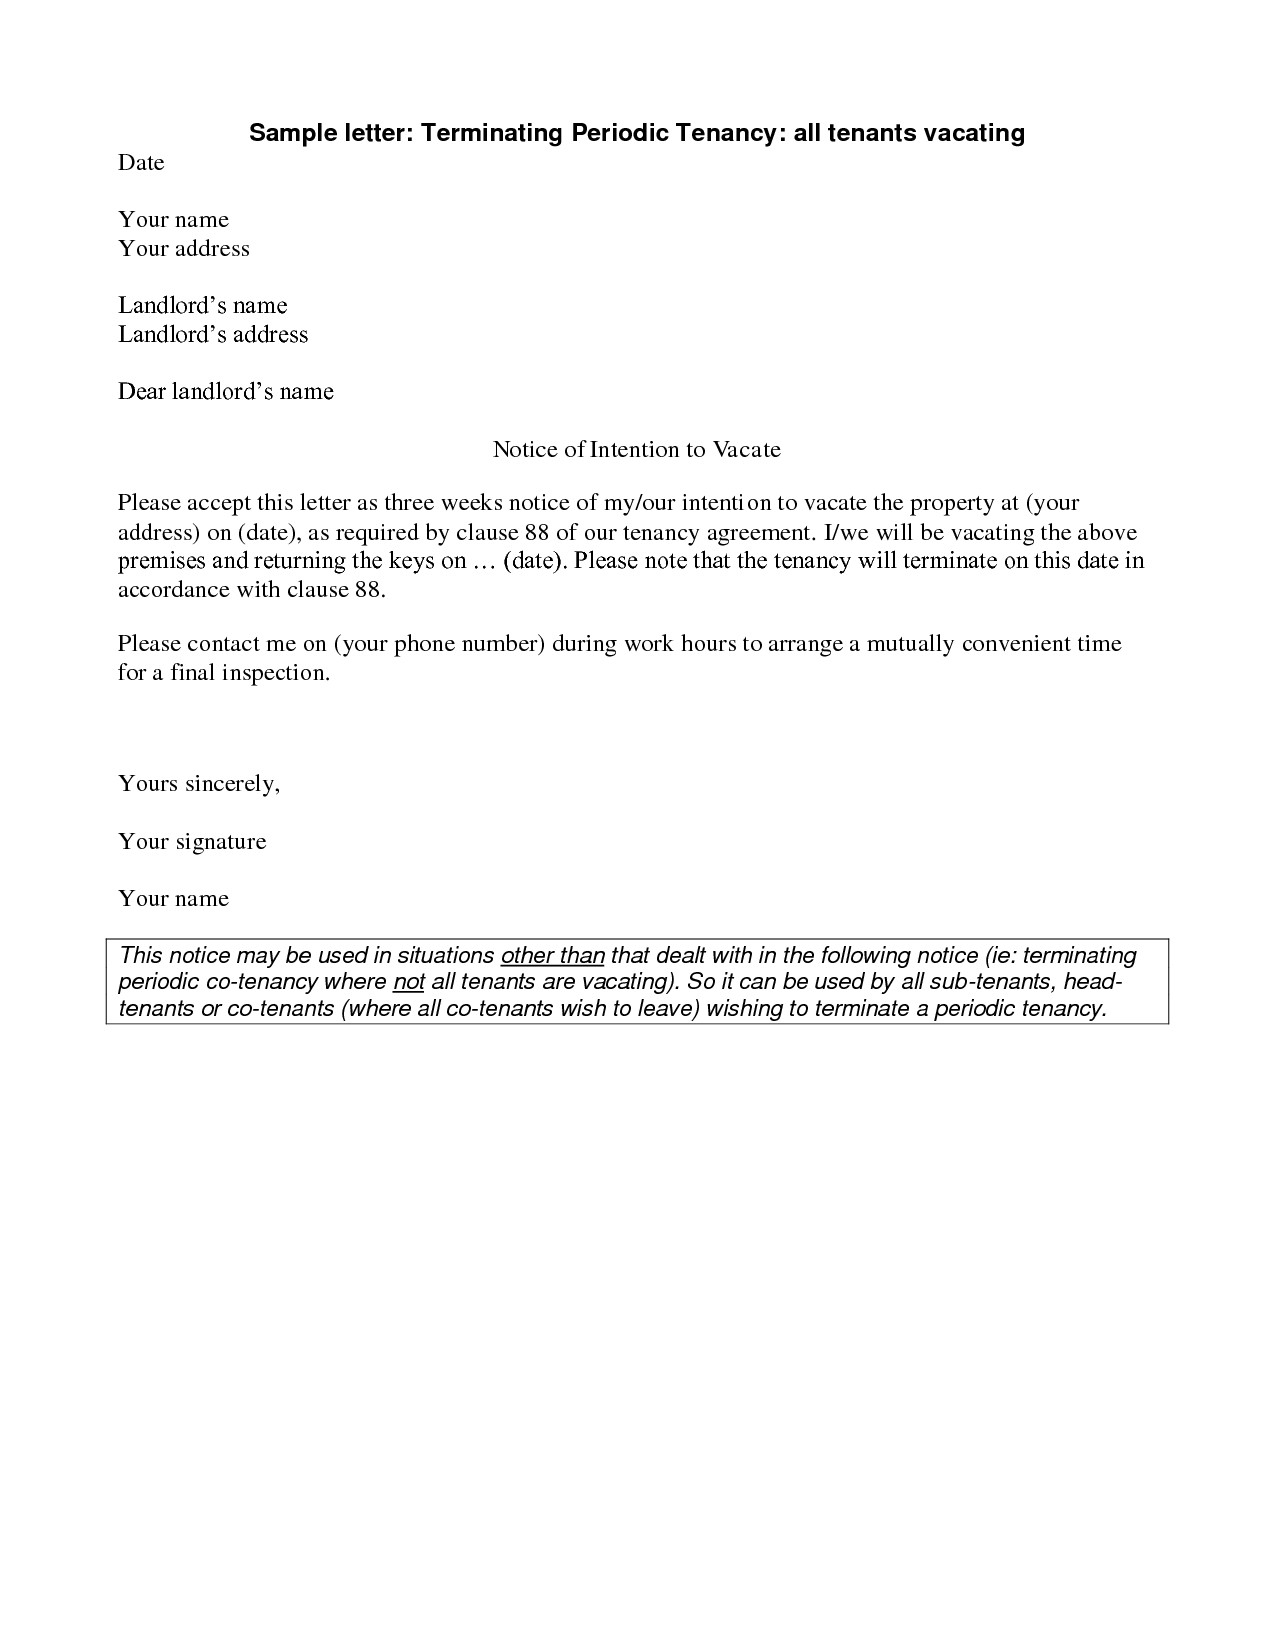 Unauthorized Tenant Letter Template - Landlord End Tenancy Letter Template